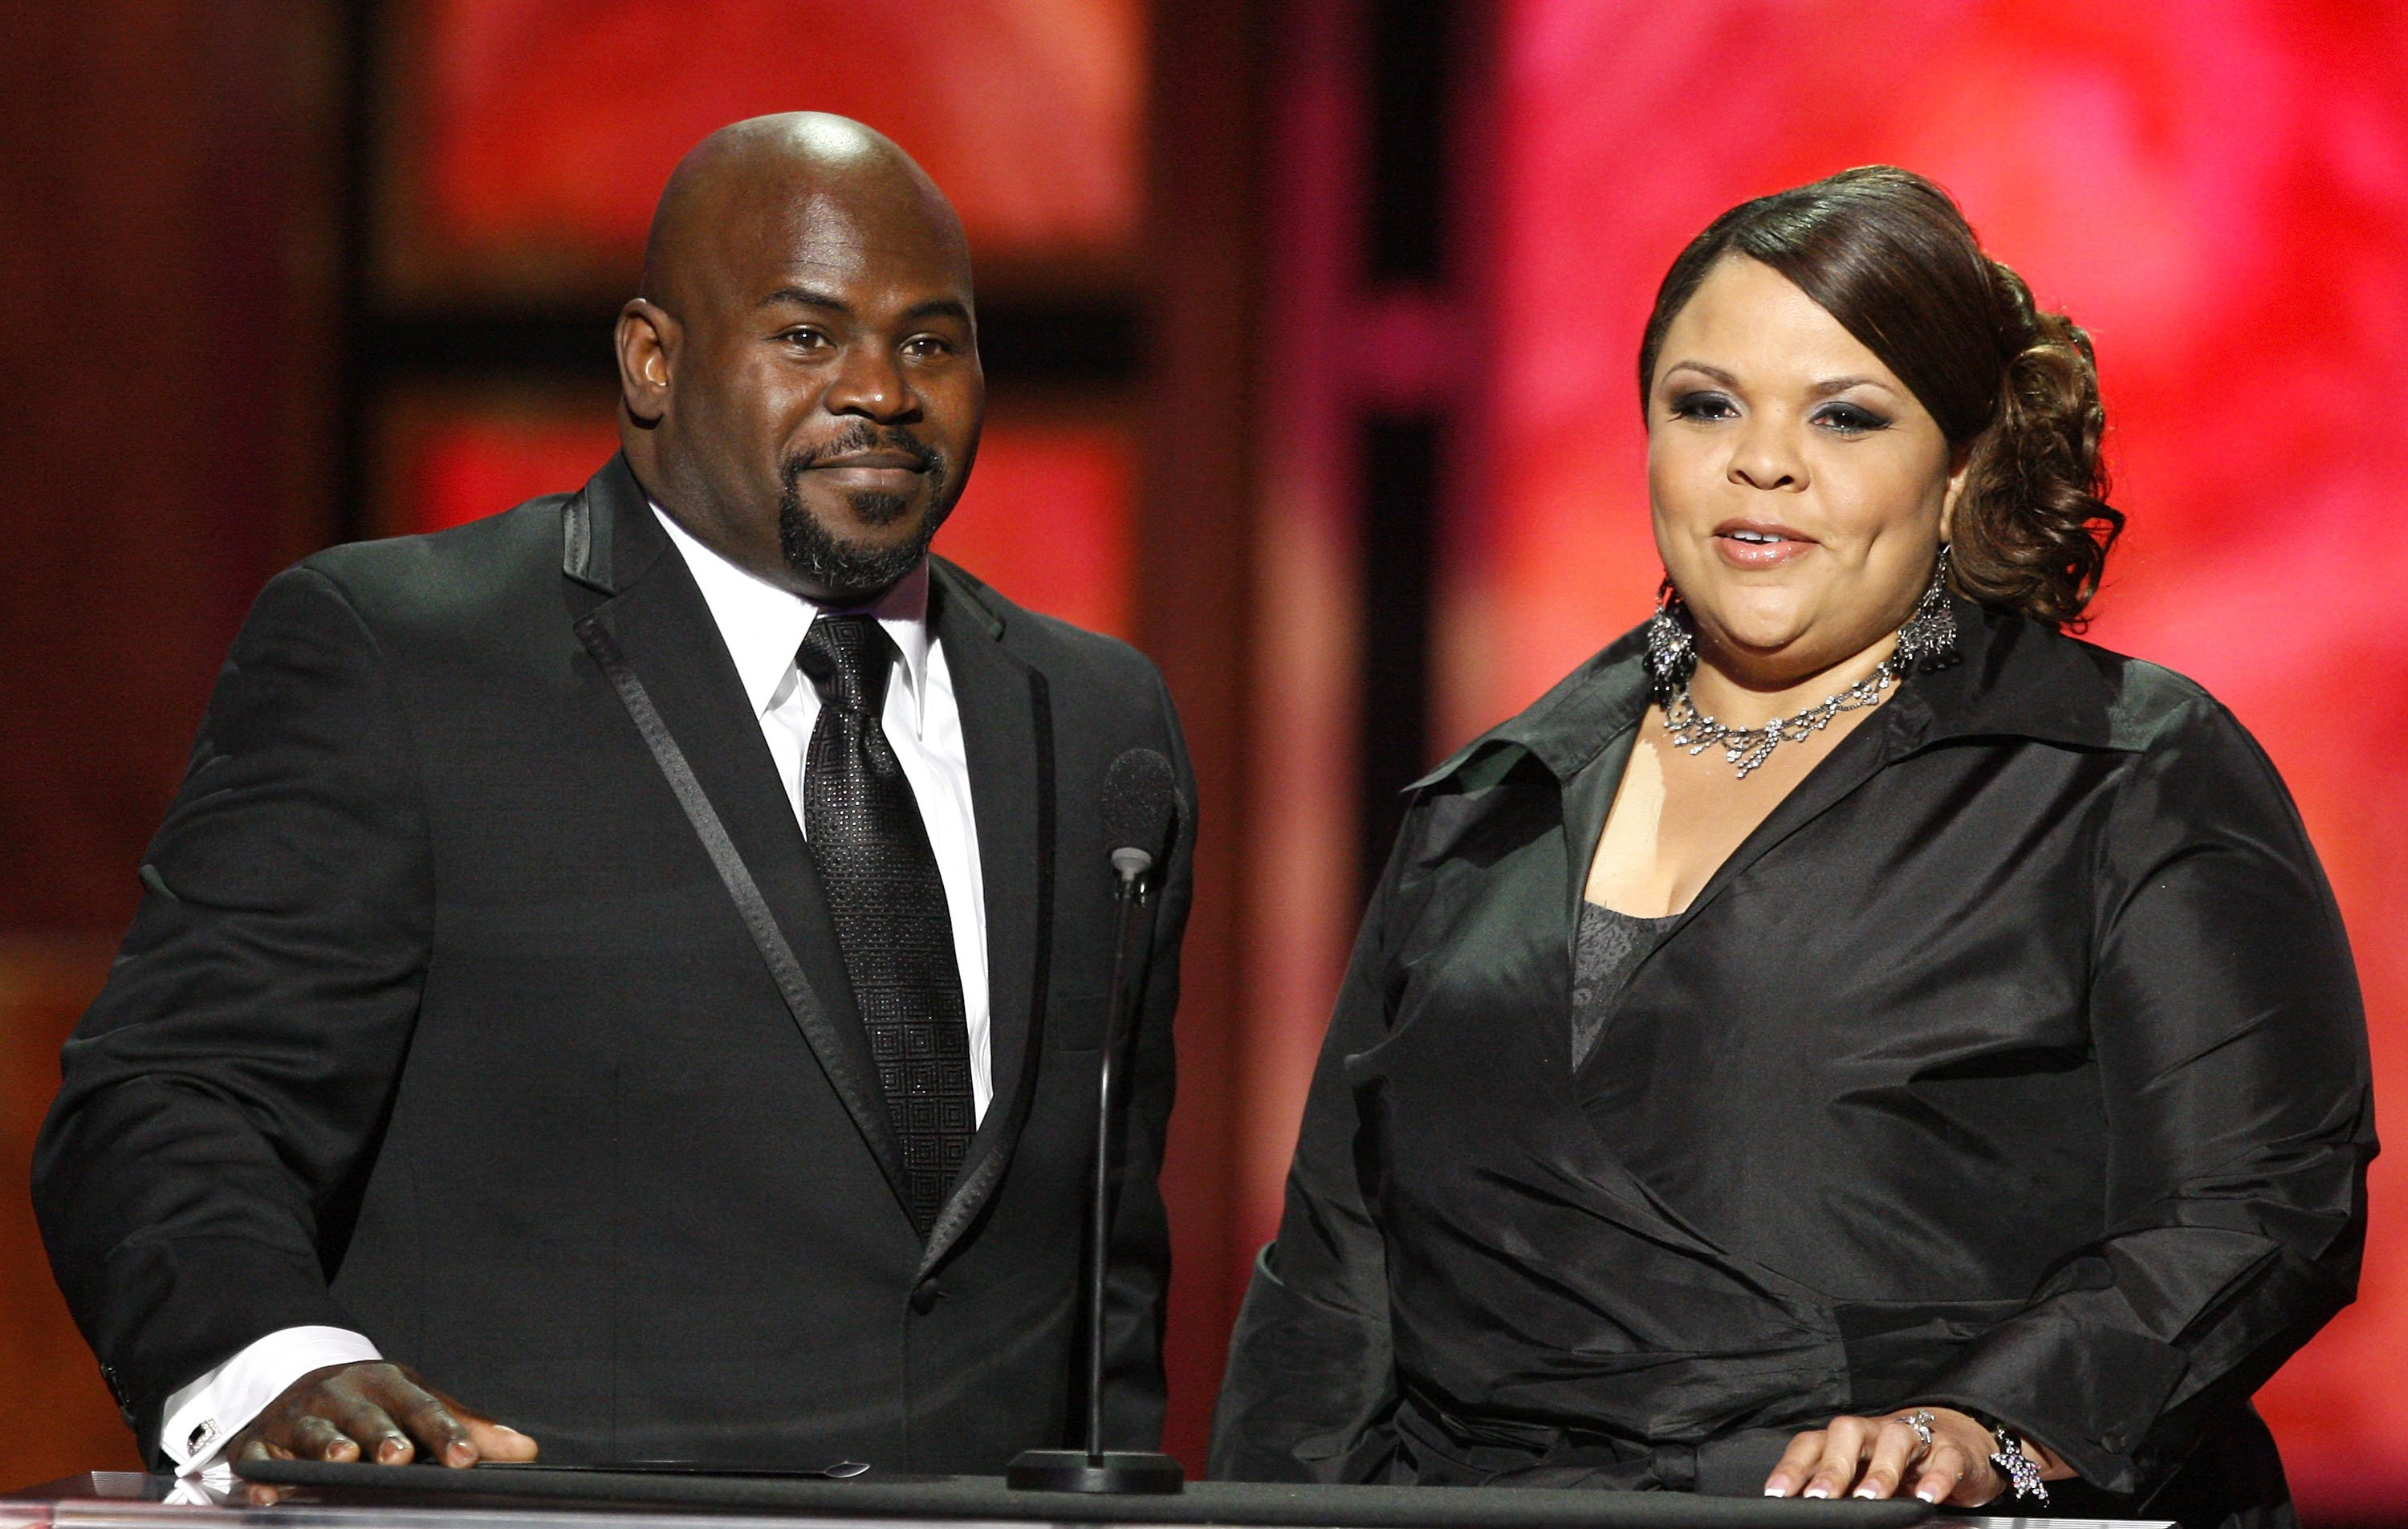 David Mann and Tamela Mann at the 40th NAACP Image Awards held at the Shrine Auditorium on February 12, 2009  | Source: Getty Images